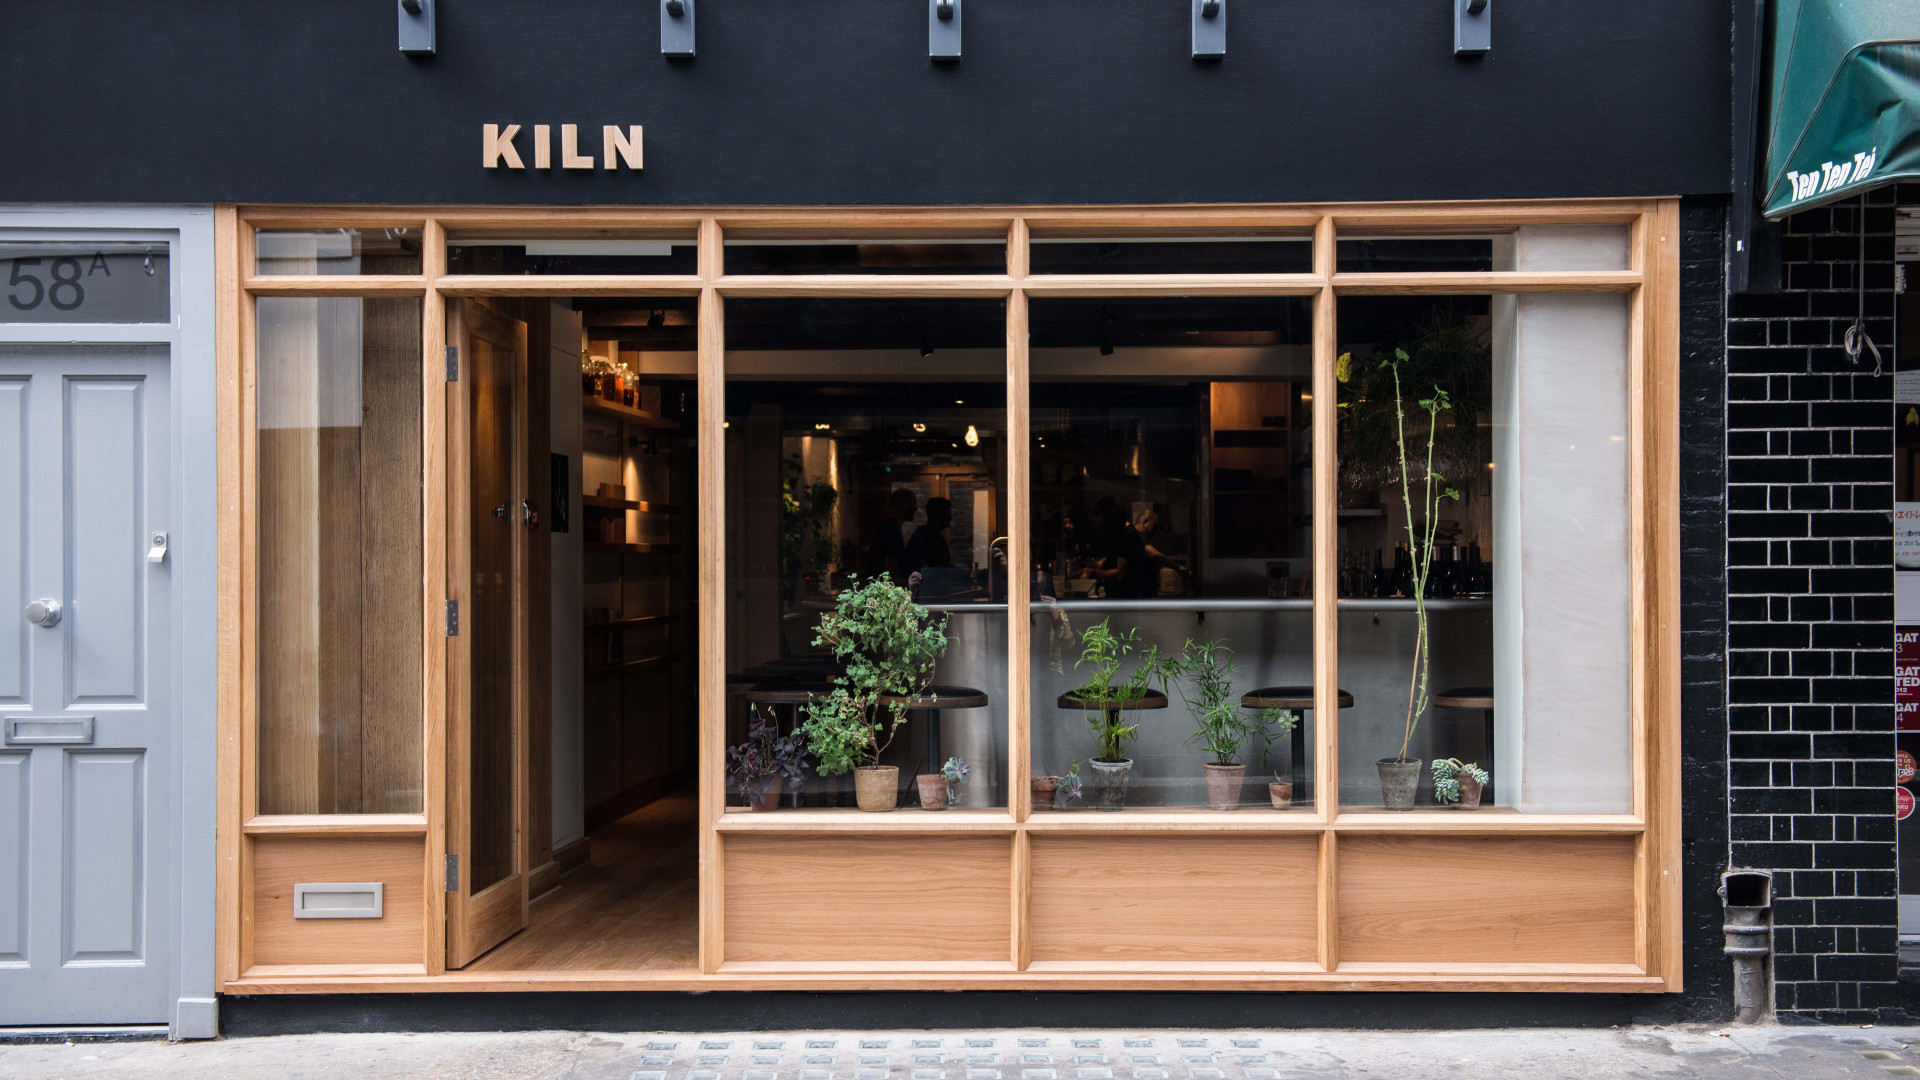 Kiln, on Brewer Street in Soho